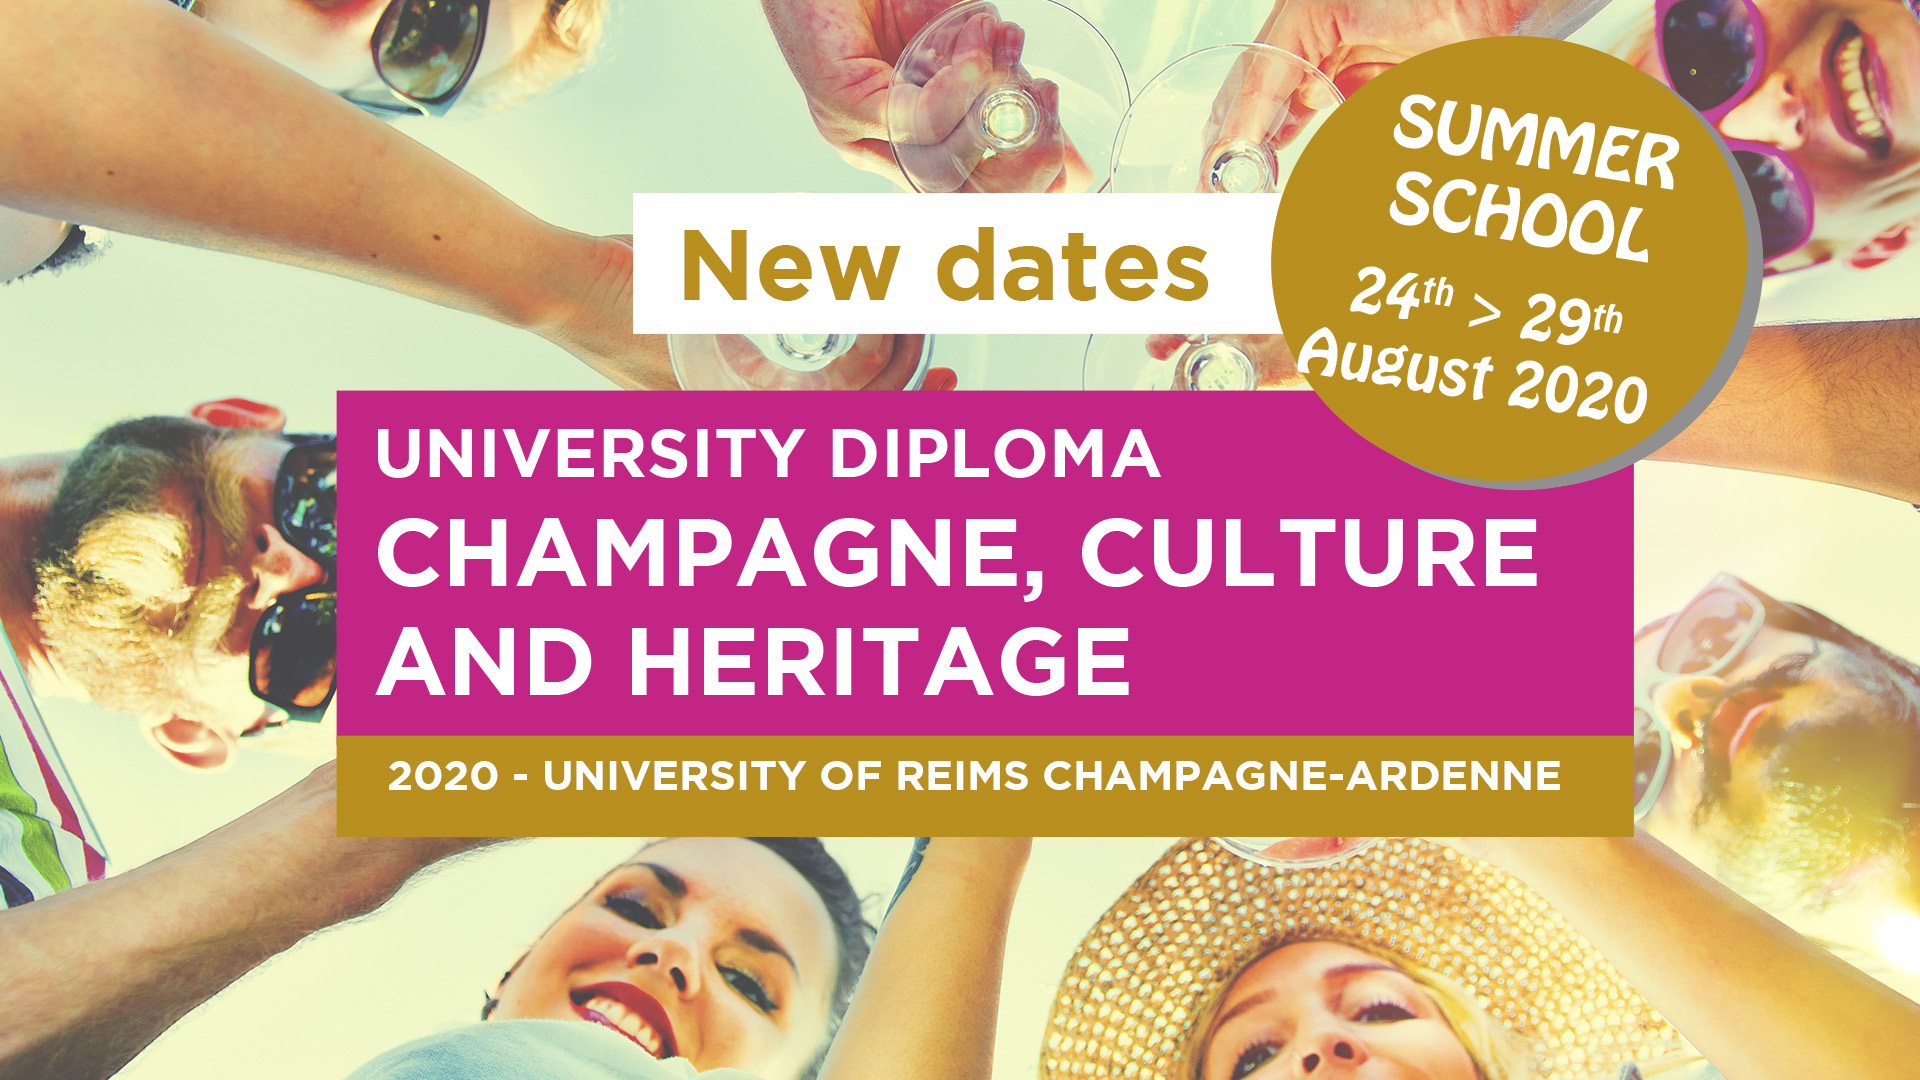 Summer School Champagne Cutlure Heritage Formation Reims Diplome